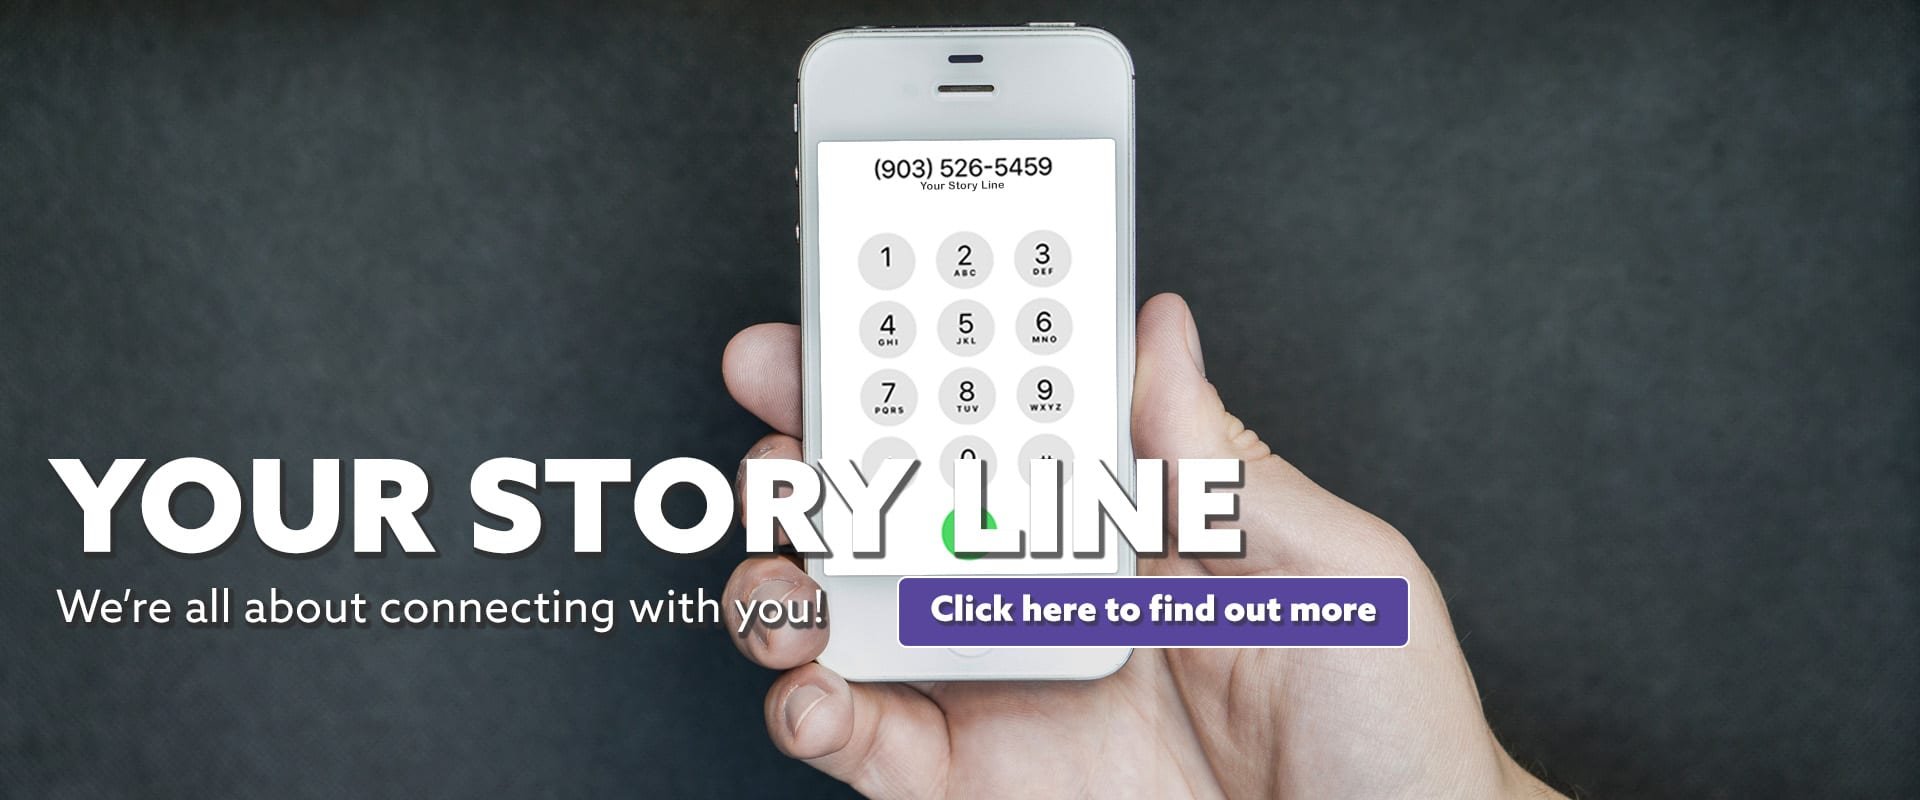 2019 Your Story Line Lift